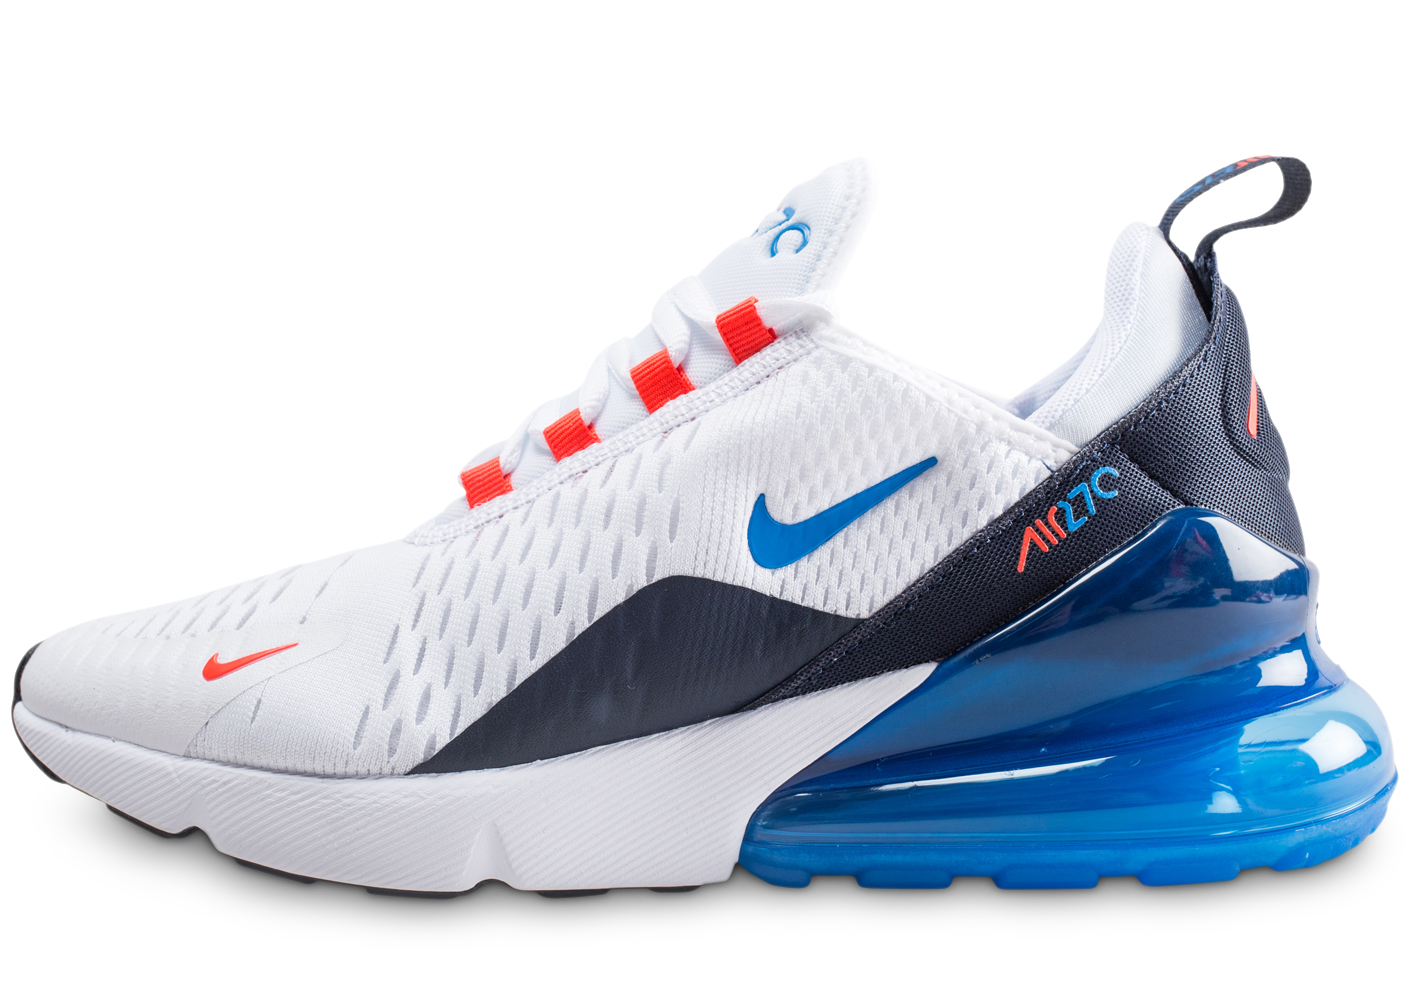 reputable site 7290d 6e3bc Nike enfant air max 270 blanche et bleue junior.